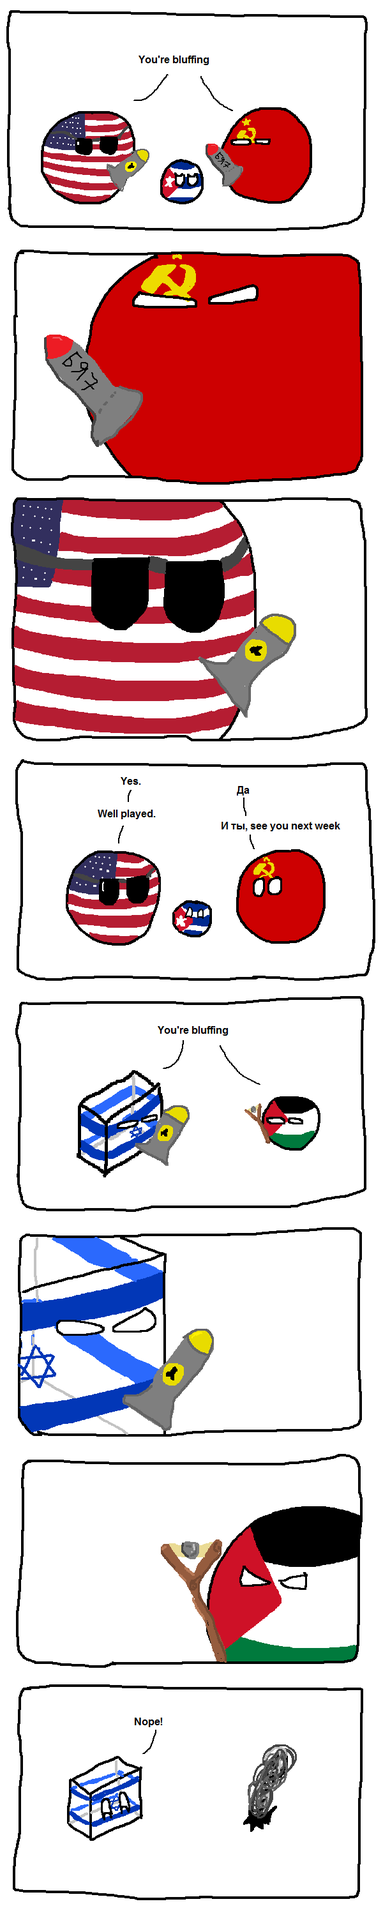 Israel doesn't play chicken